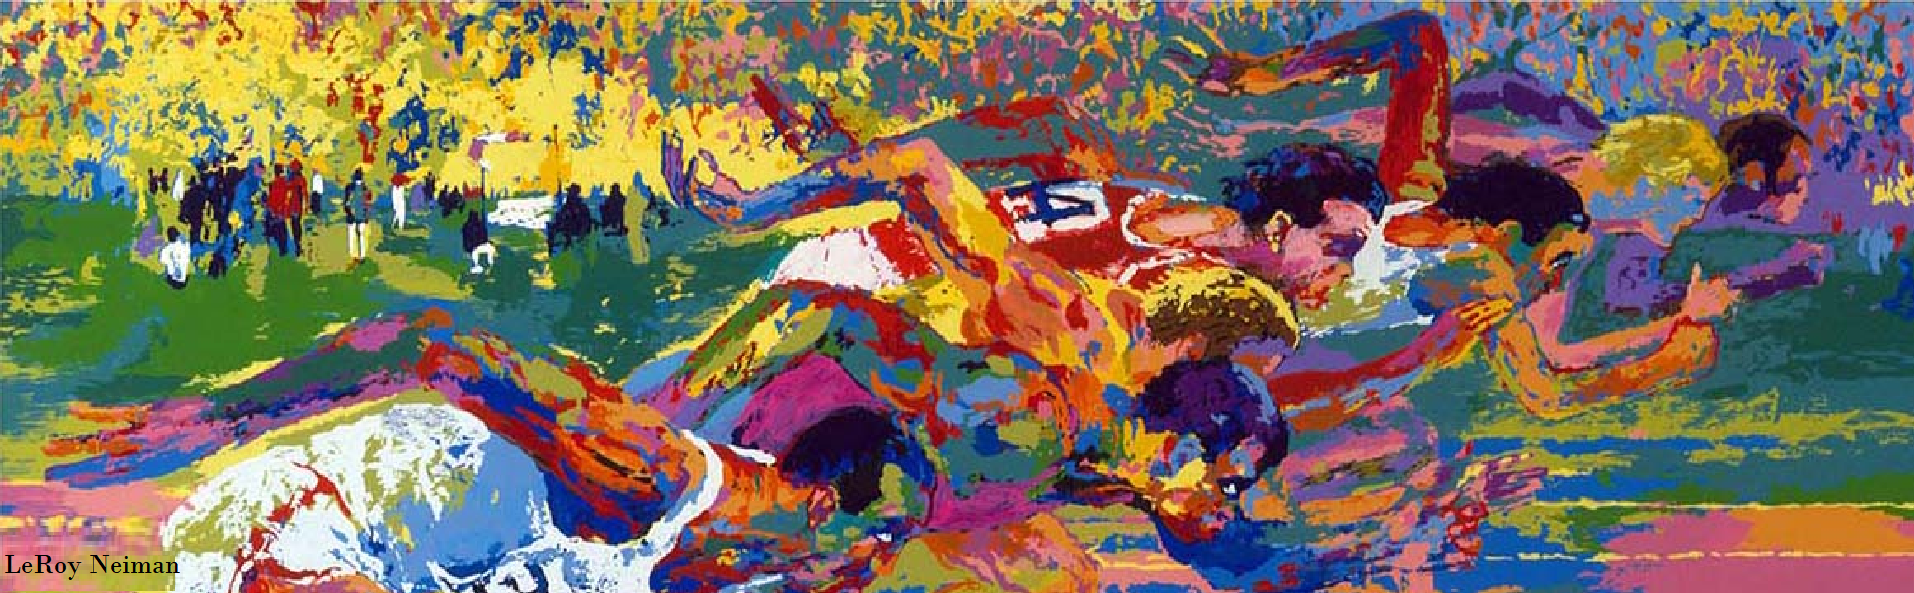 Leroy Neiman track and field race